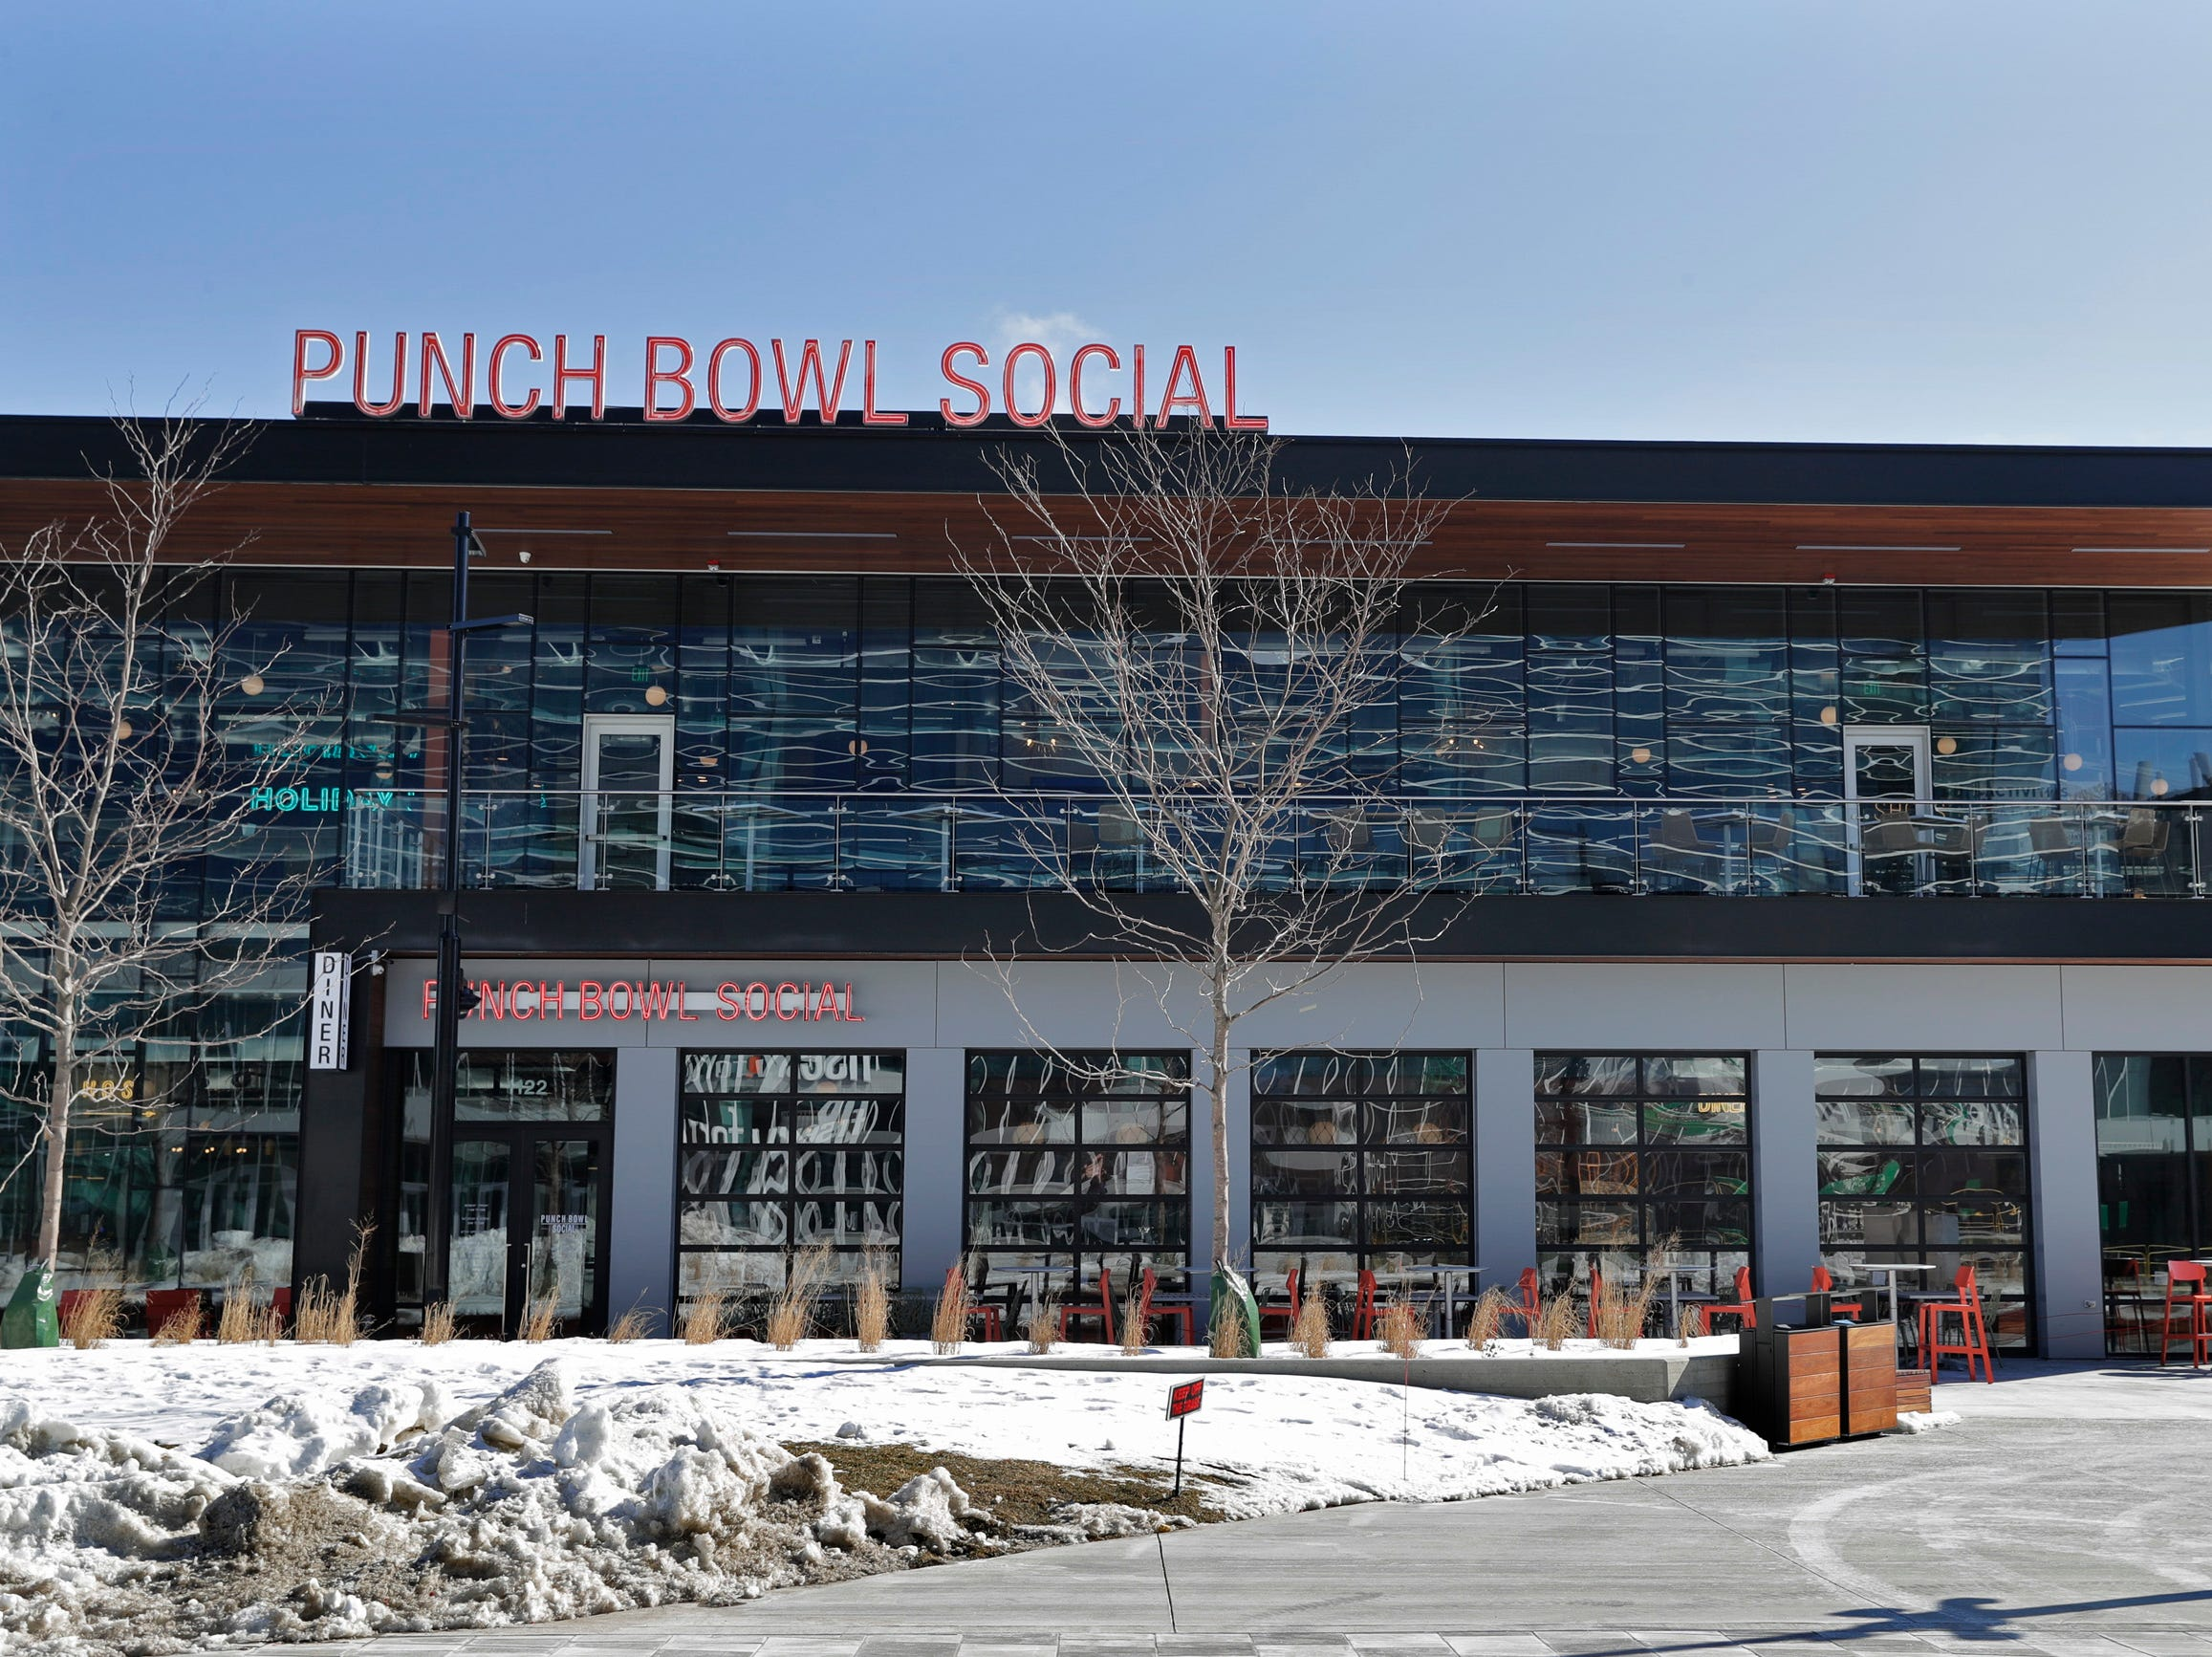 One thing is clear from a visit to the new Punch Bowl Social: It's going to be a loud, fun place. Punch Bowl Social, which opened at its first-ever Wisconsin location at the Entertainment Block by Fiserv Forum on  March 9, 2019.